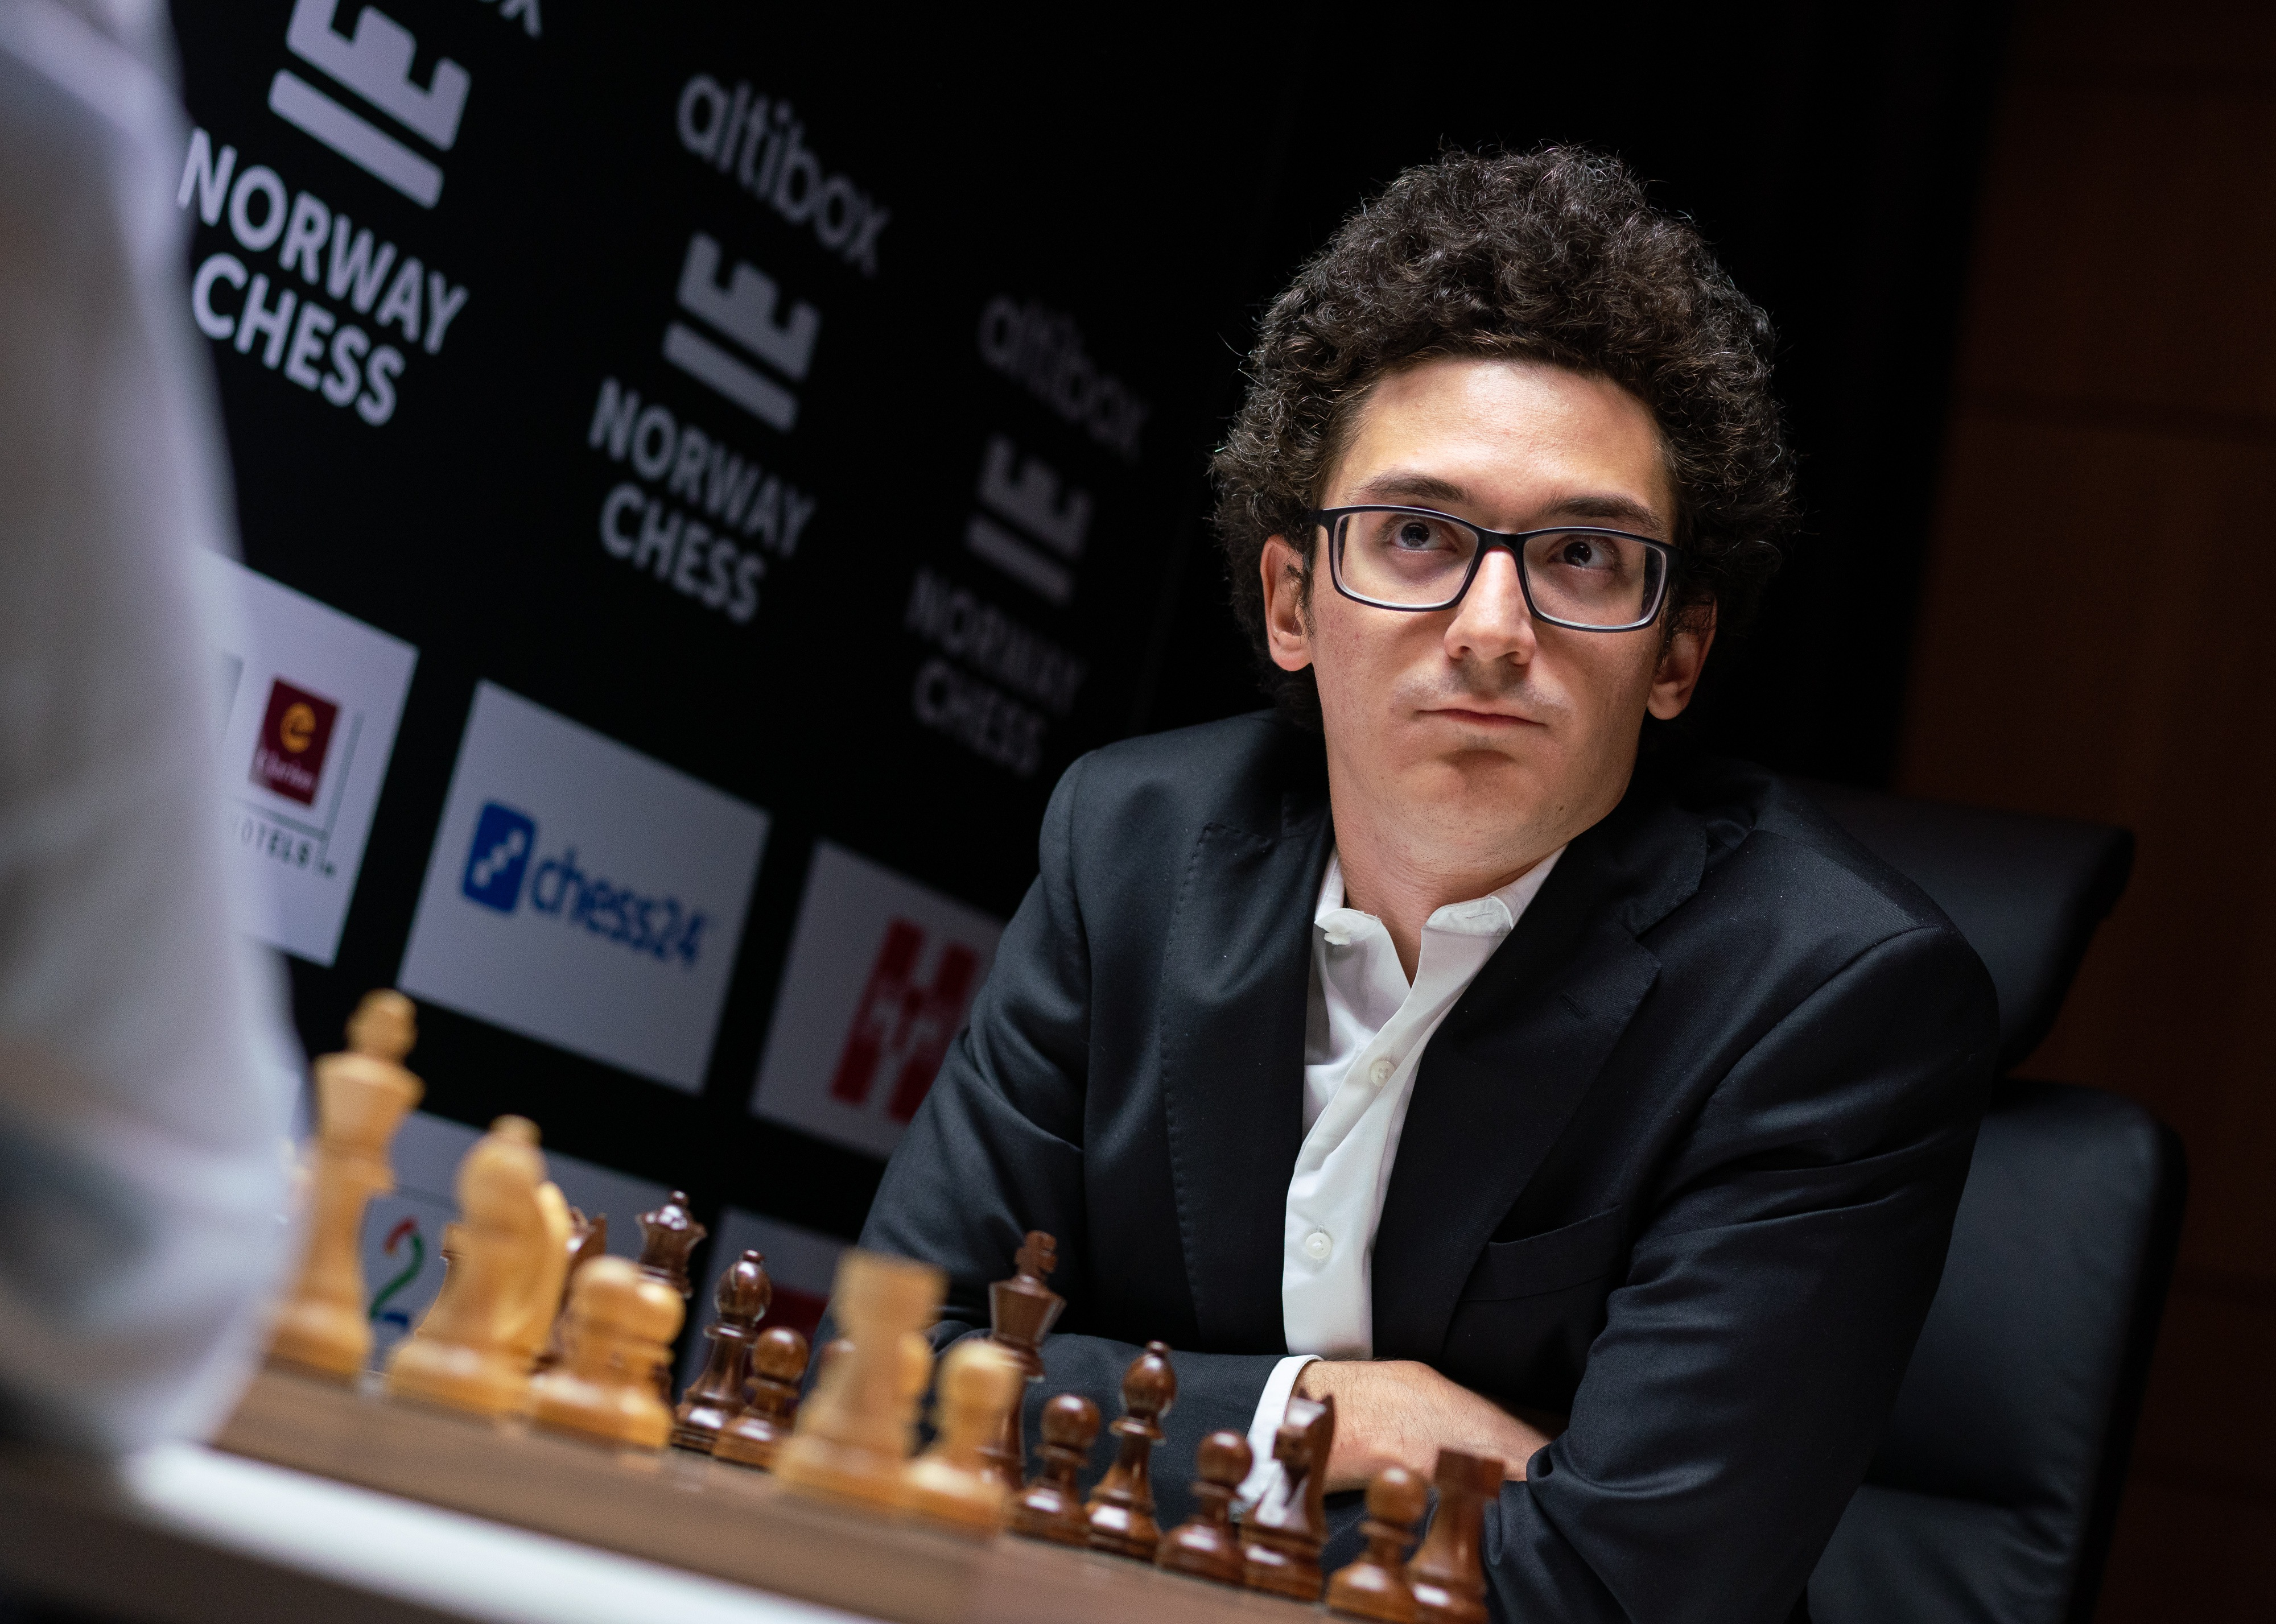 Norway Chess odds Caruana Carlsen